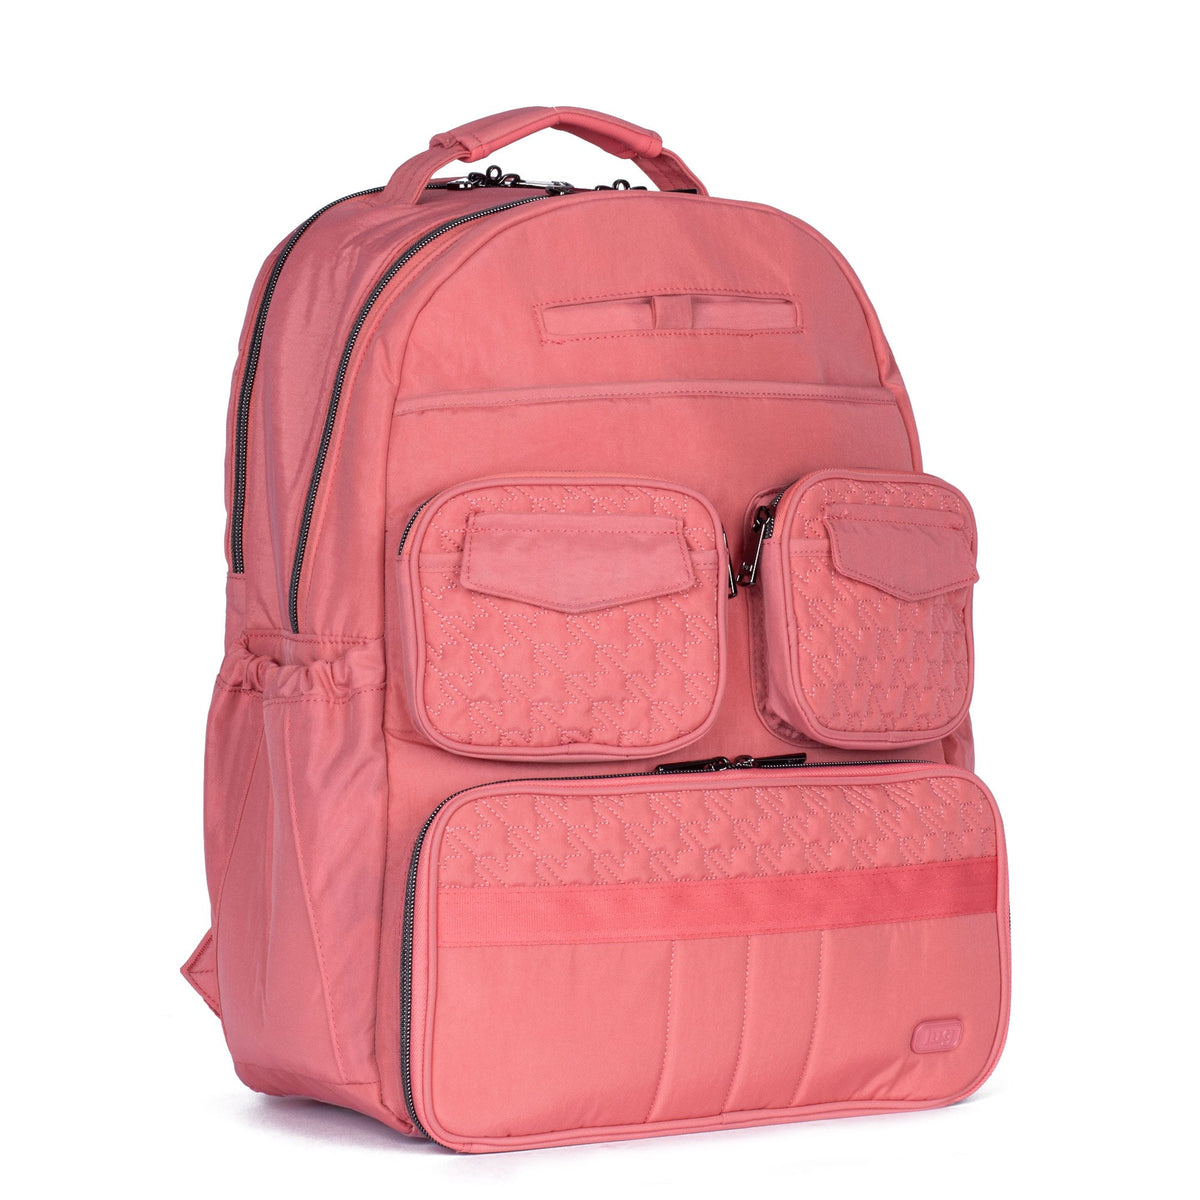 Puddle Jumper SE Backpack